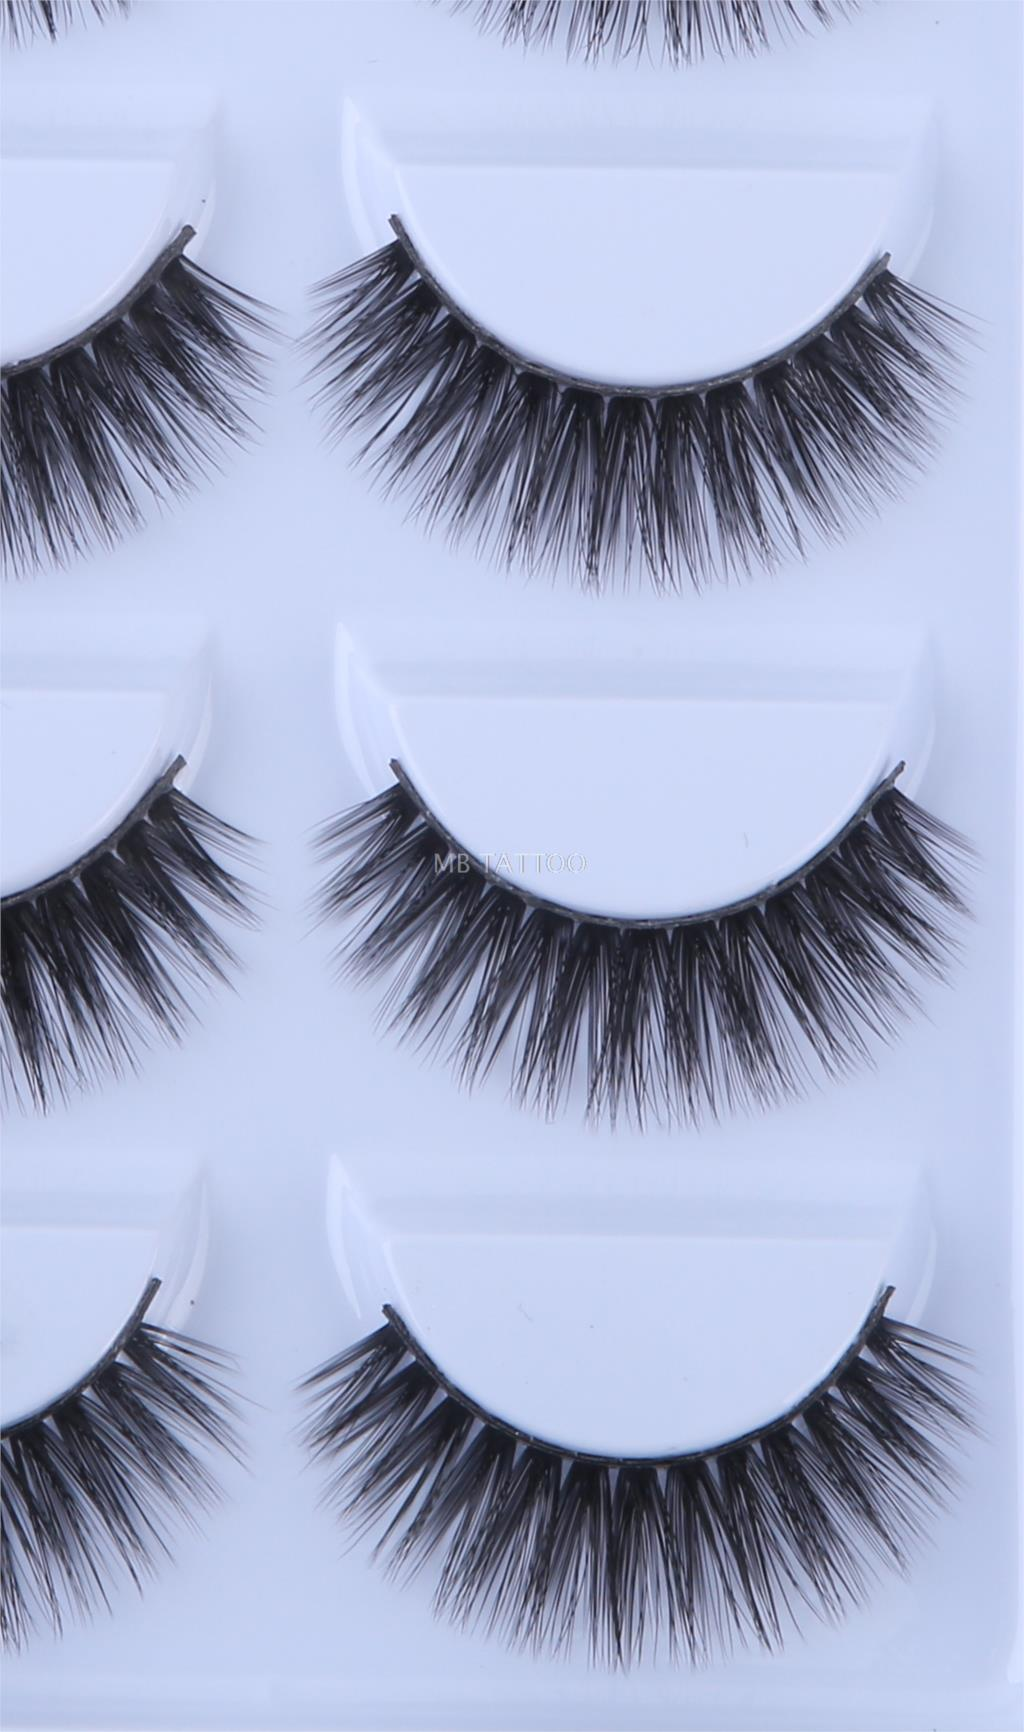 HTB1ajUUQW6qK1RjSZFmq6x0PFXag New 3D 5 Pairs Mink Eyelashes extension make up natural Long false eyelashes fake eye Lashes mink Makeup wholesale Lashes